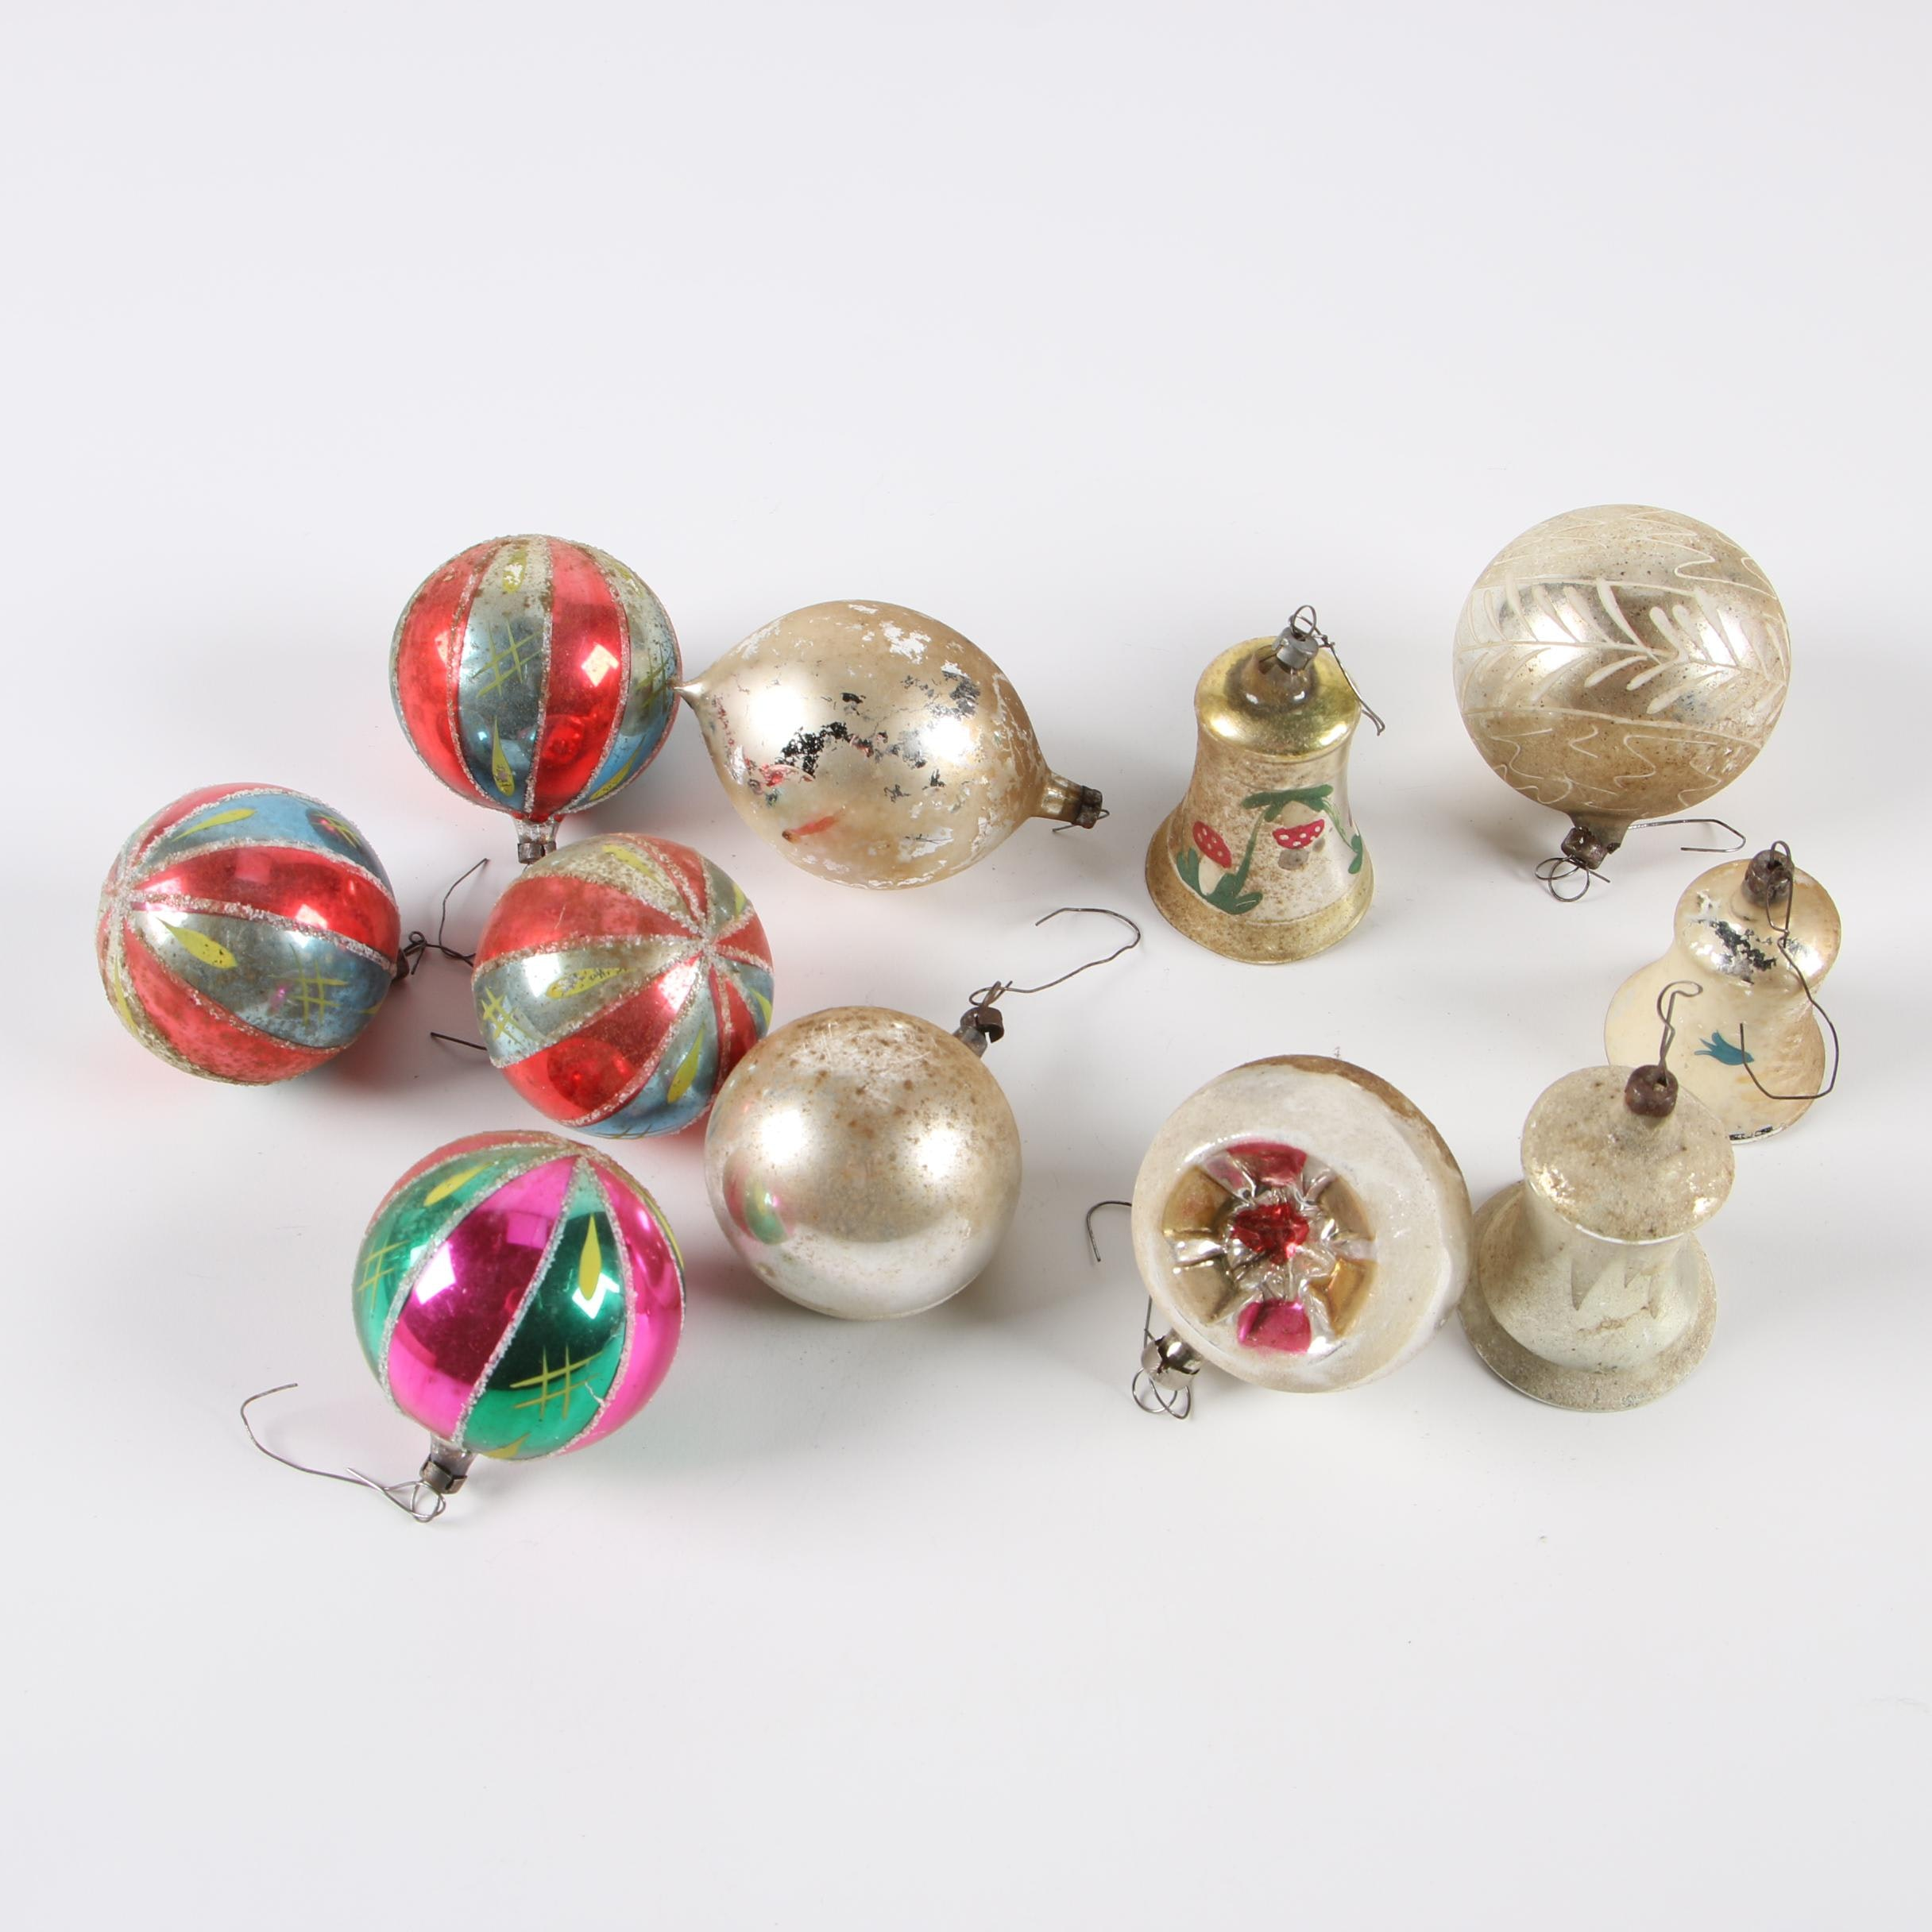 European Glass Christmas Ornaments, Mid-Century